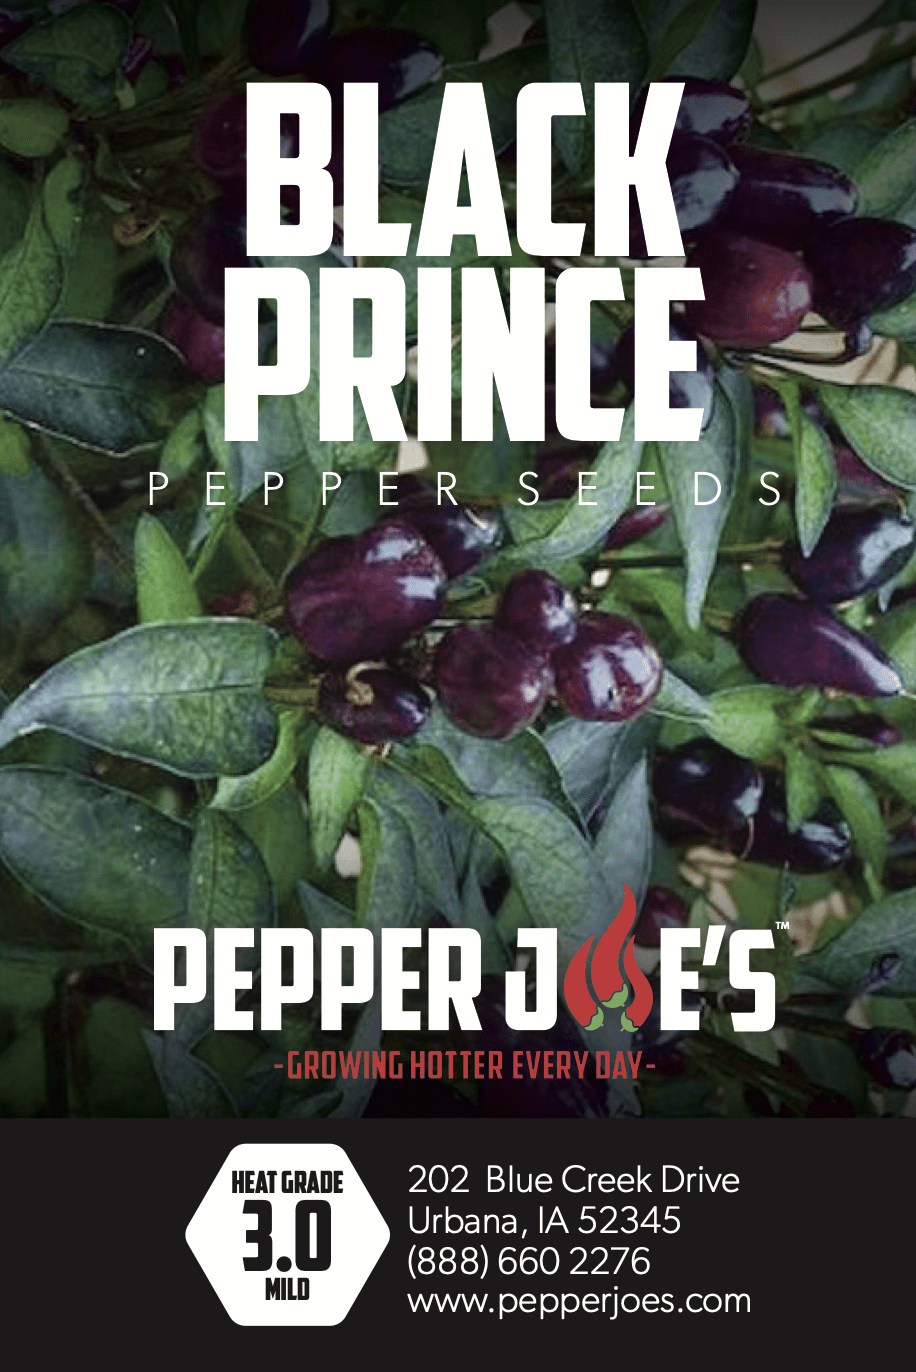 Black Prince Pepper Seeds